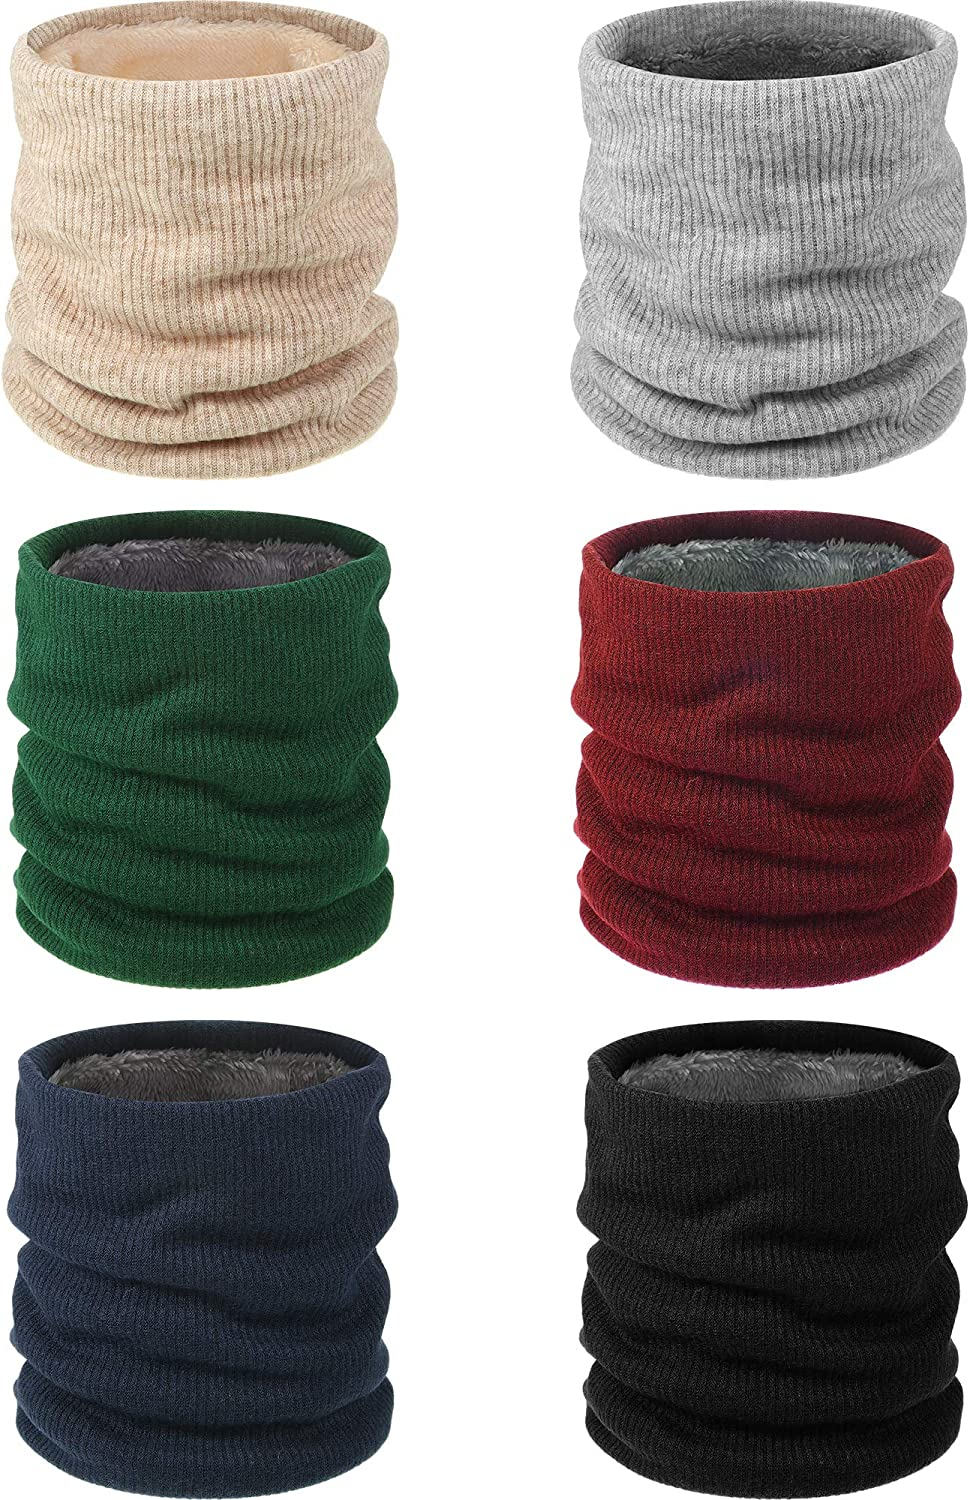 6 Pieces Winter Knit Neck Warmer Gaiter Thick Double-Layer Windproof Face Covering Scarf Knit Circle Infinity Loop Winter Neck Gaiter Set for Men Women